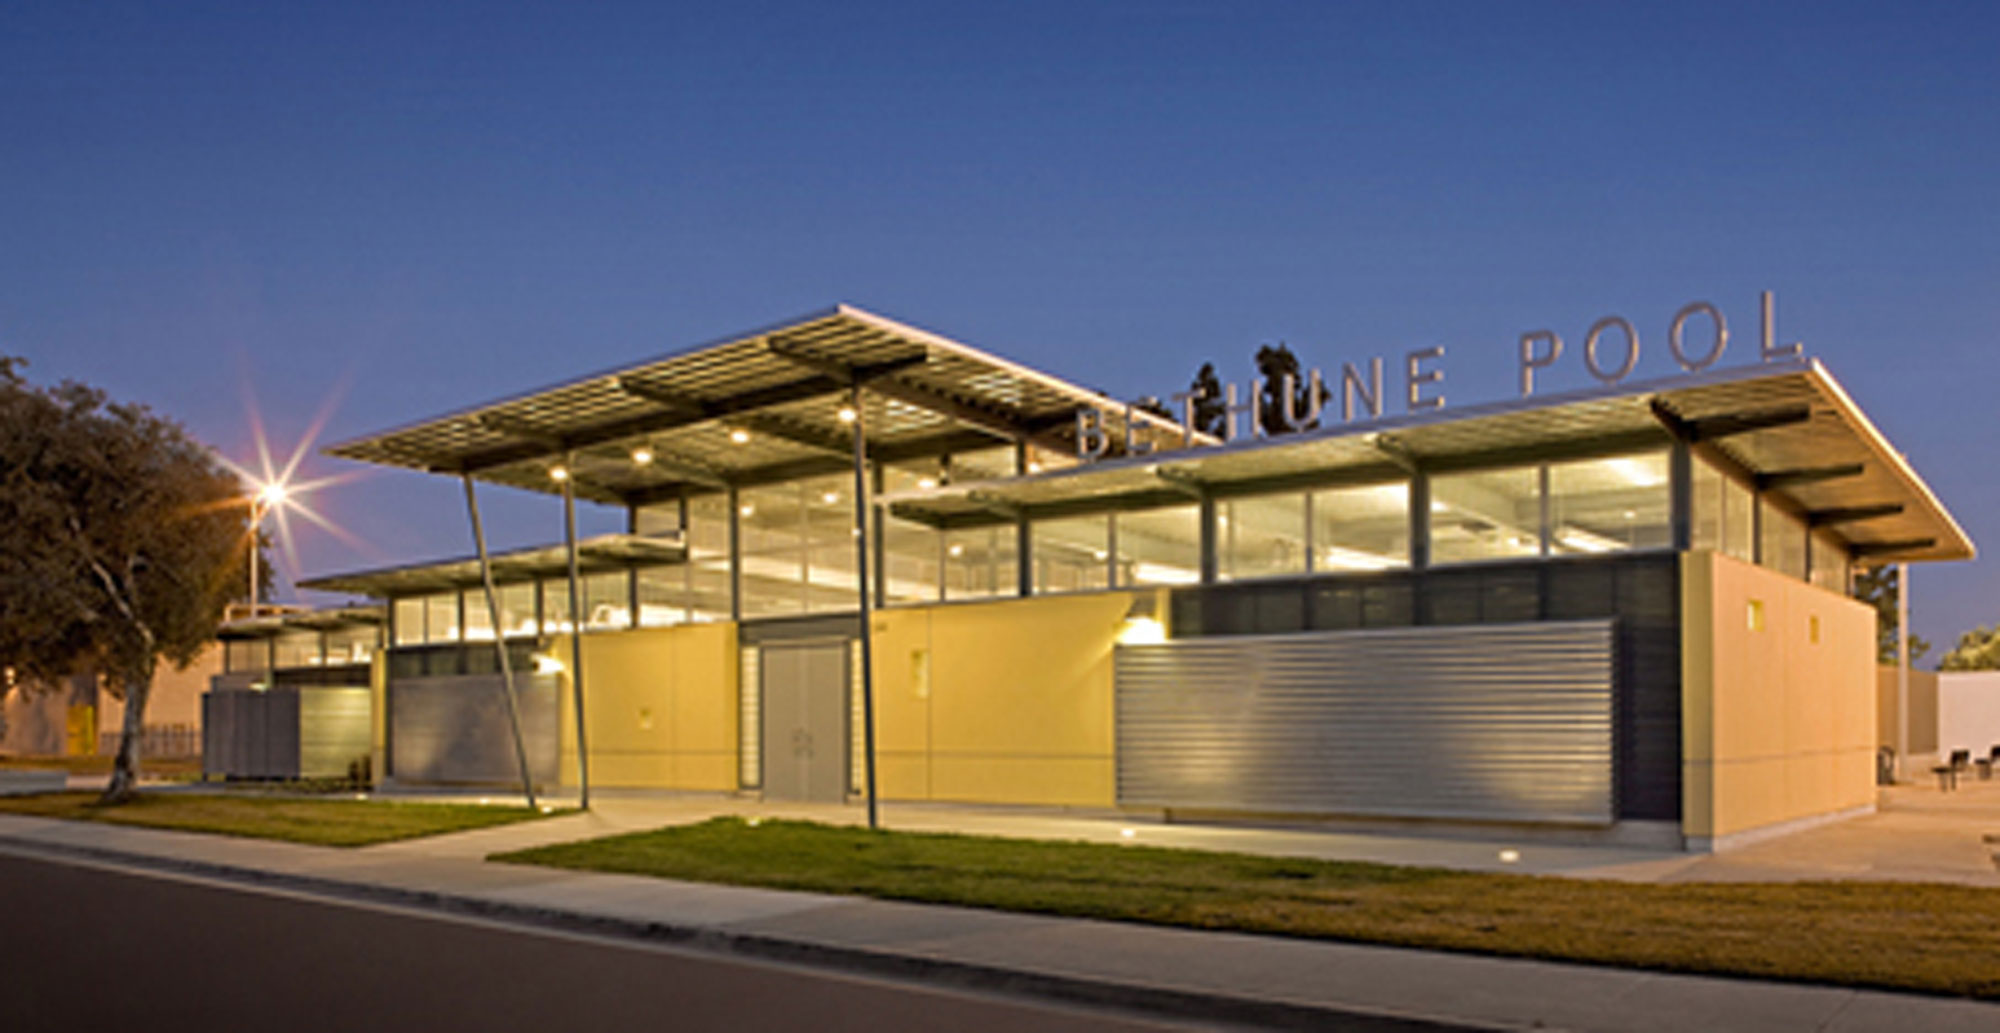 Community Plan » Creating Architectural Identity